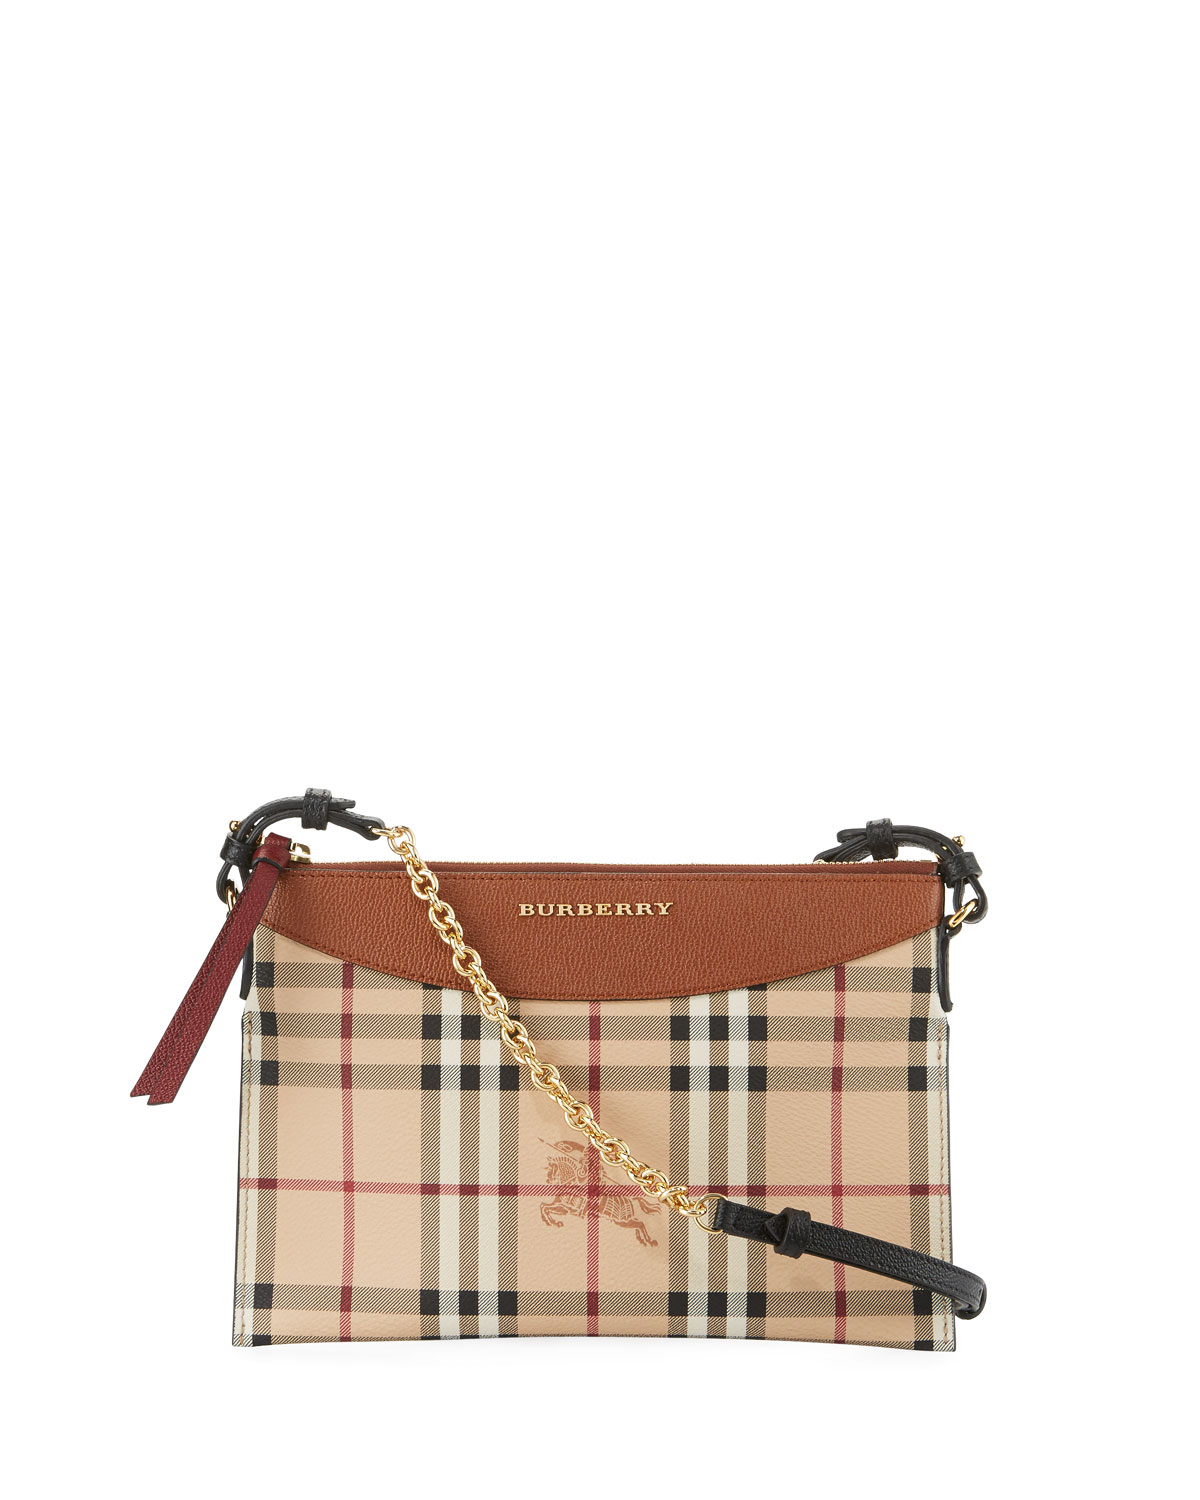 1652da0be015 Burberry Peyton Haymarket Check Leather Clutch Bag